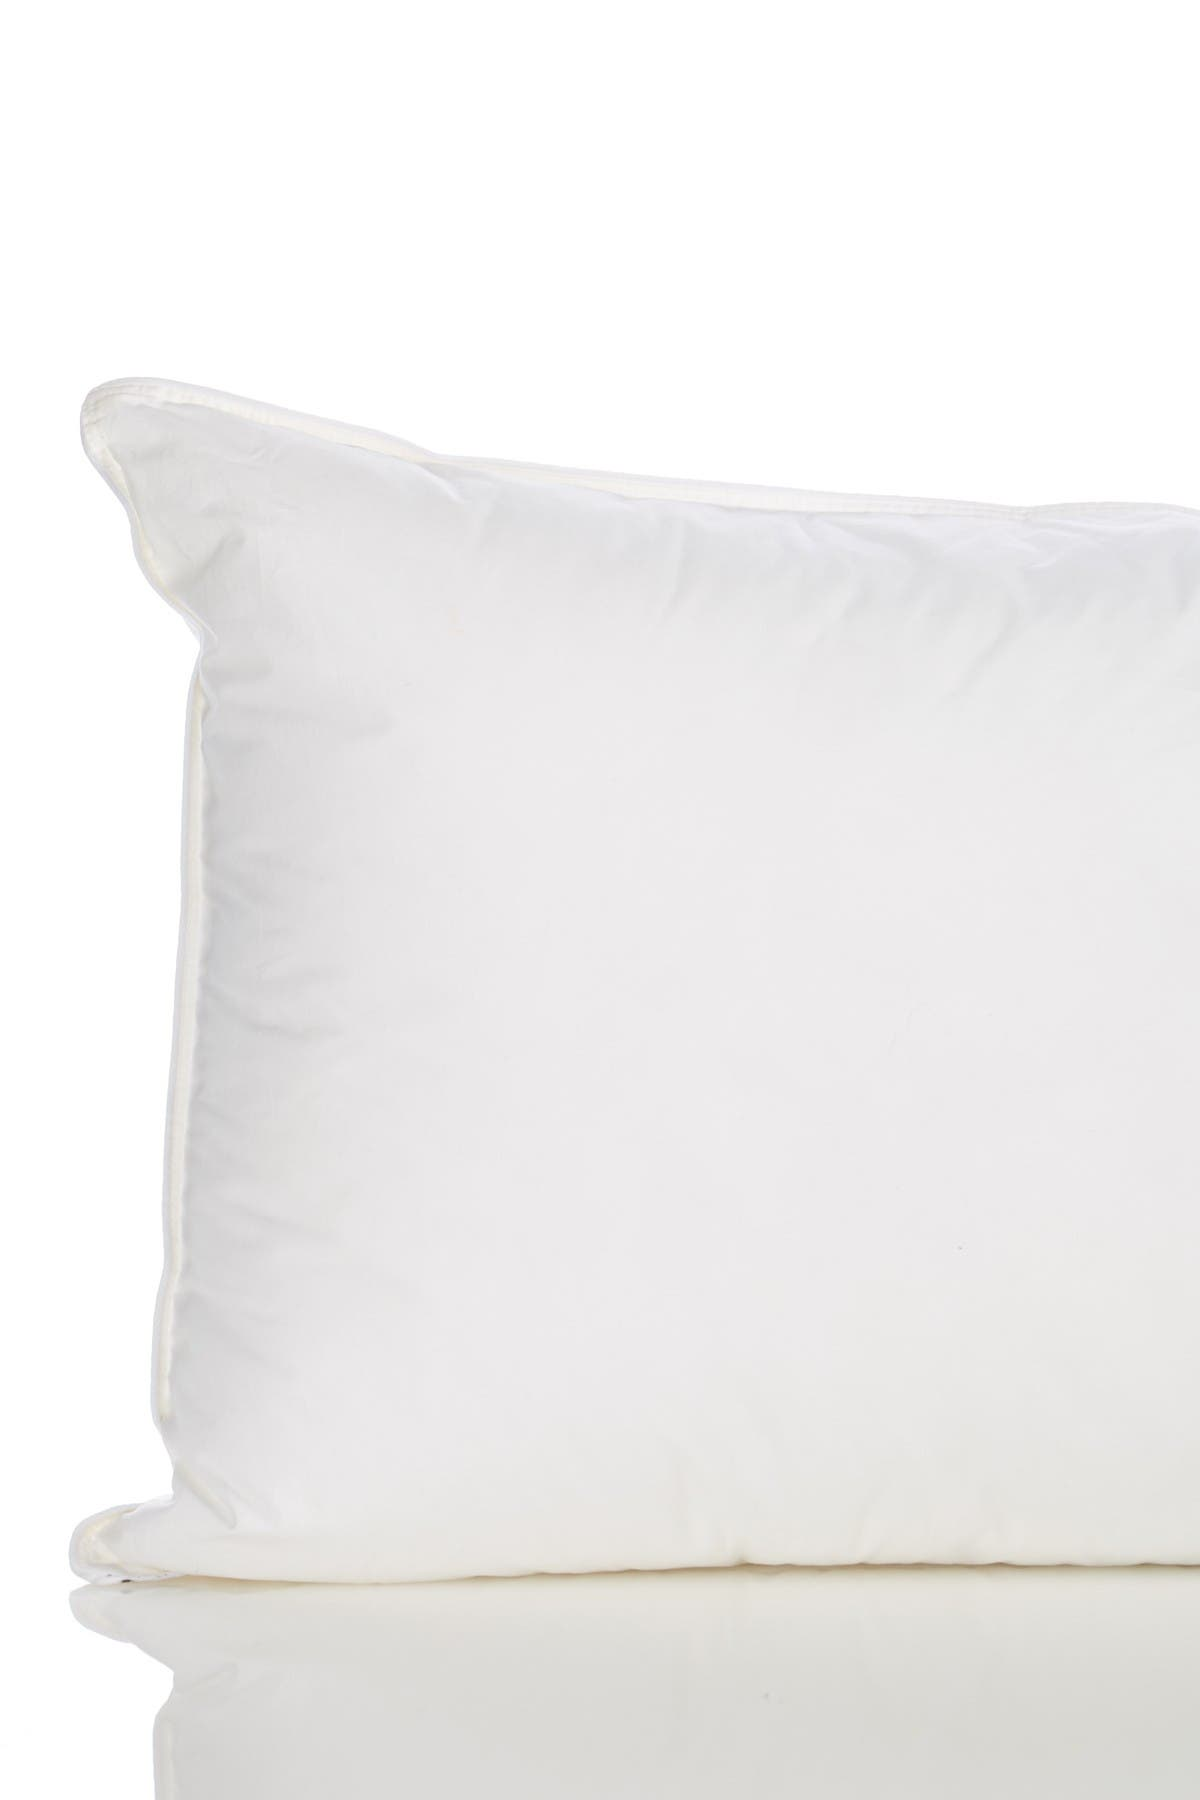 Image of Nordstrom Rack Standard Single Poly Down Alternative Pillow - White